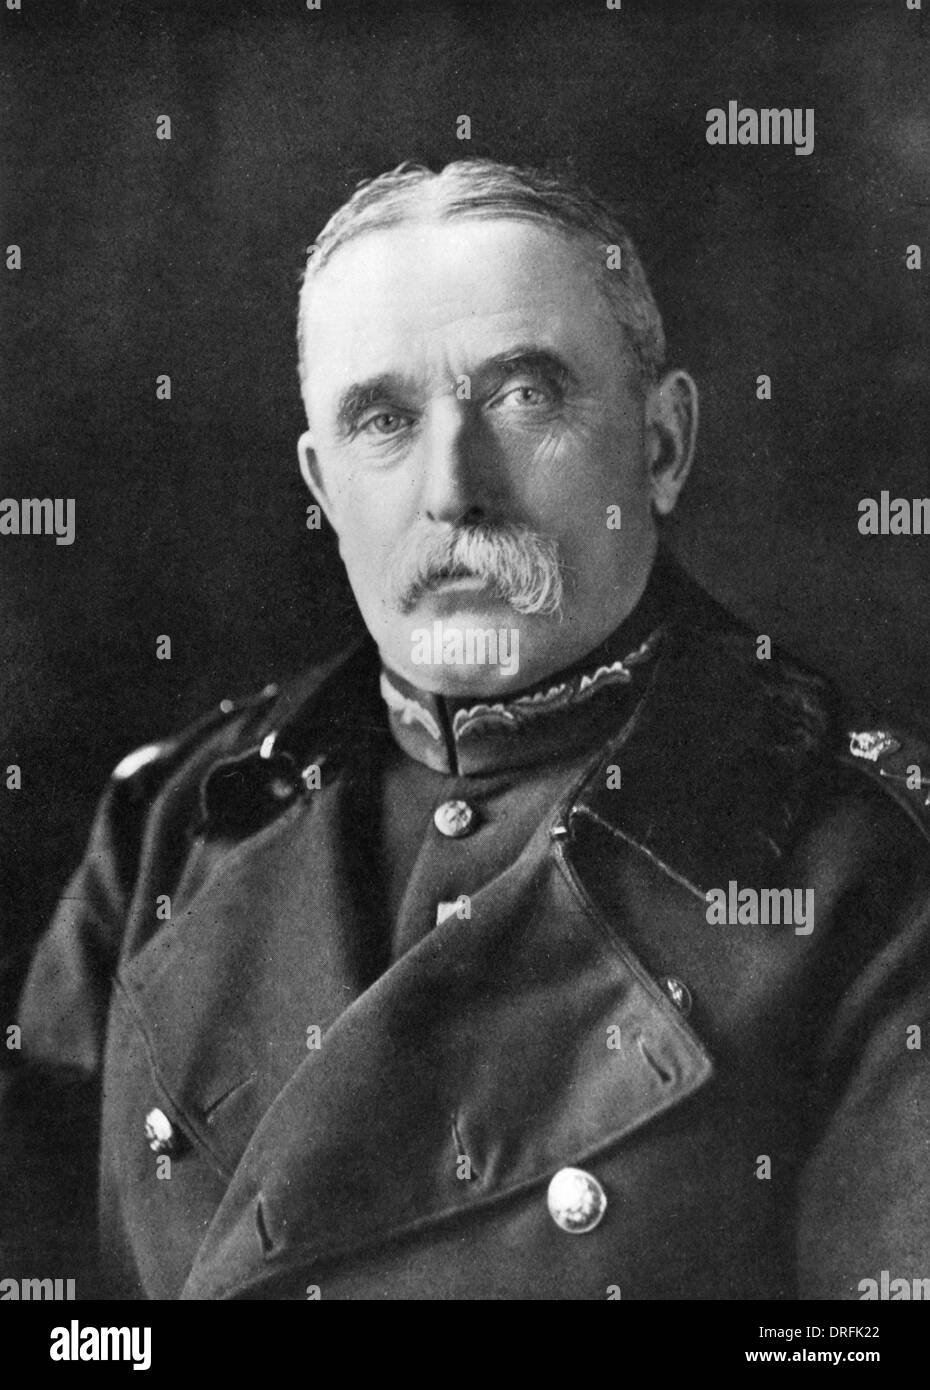 Field Marshal Sir John French, British Army officer - Stock Image